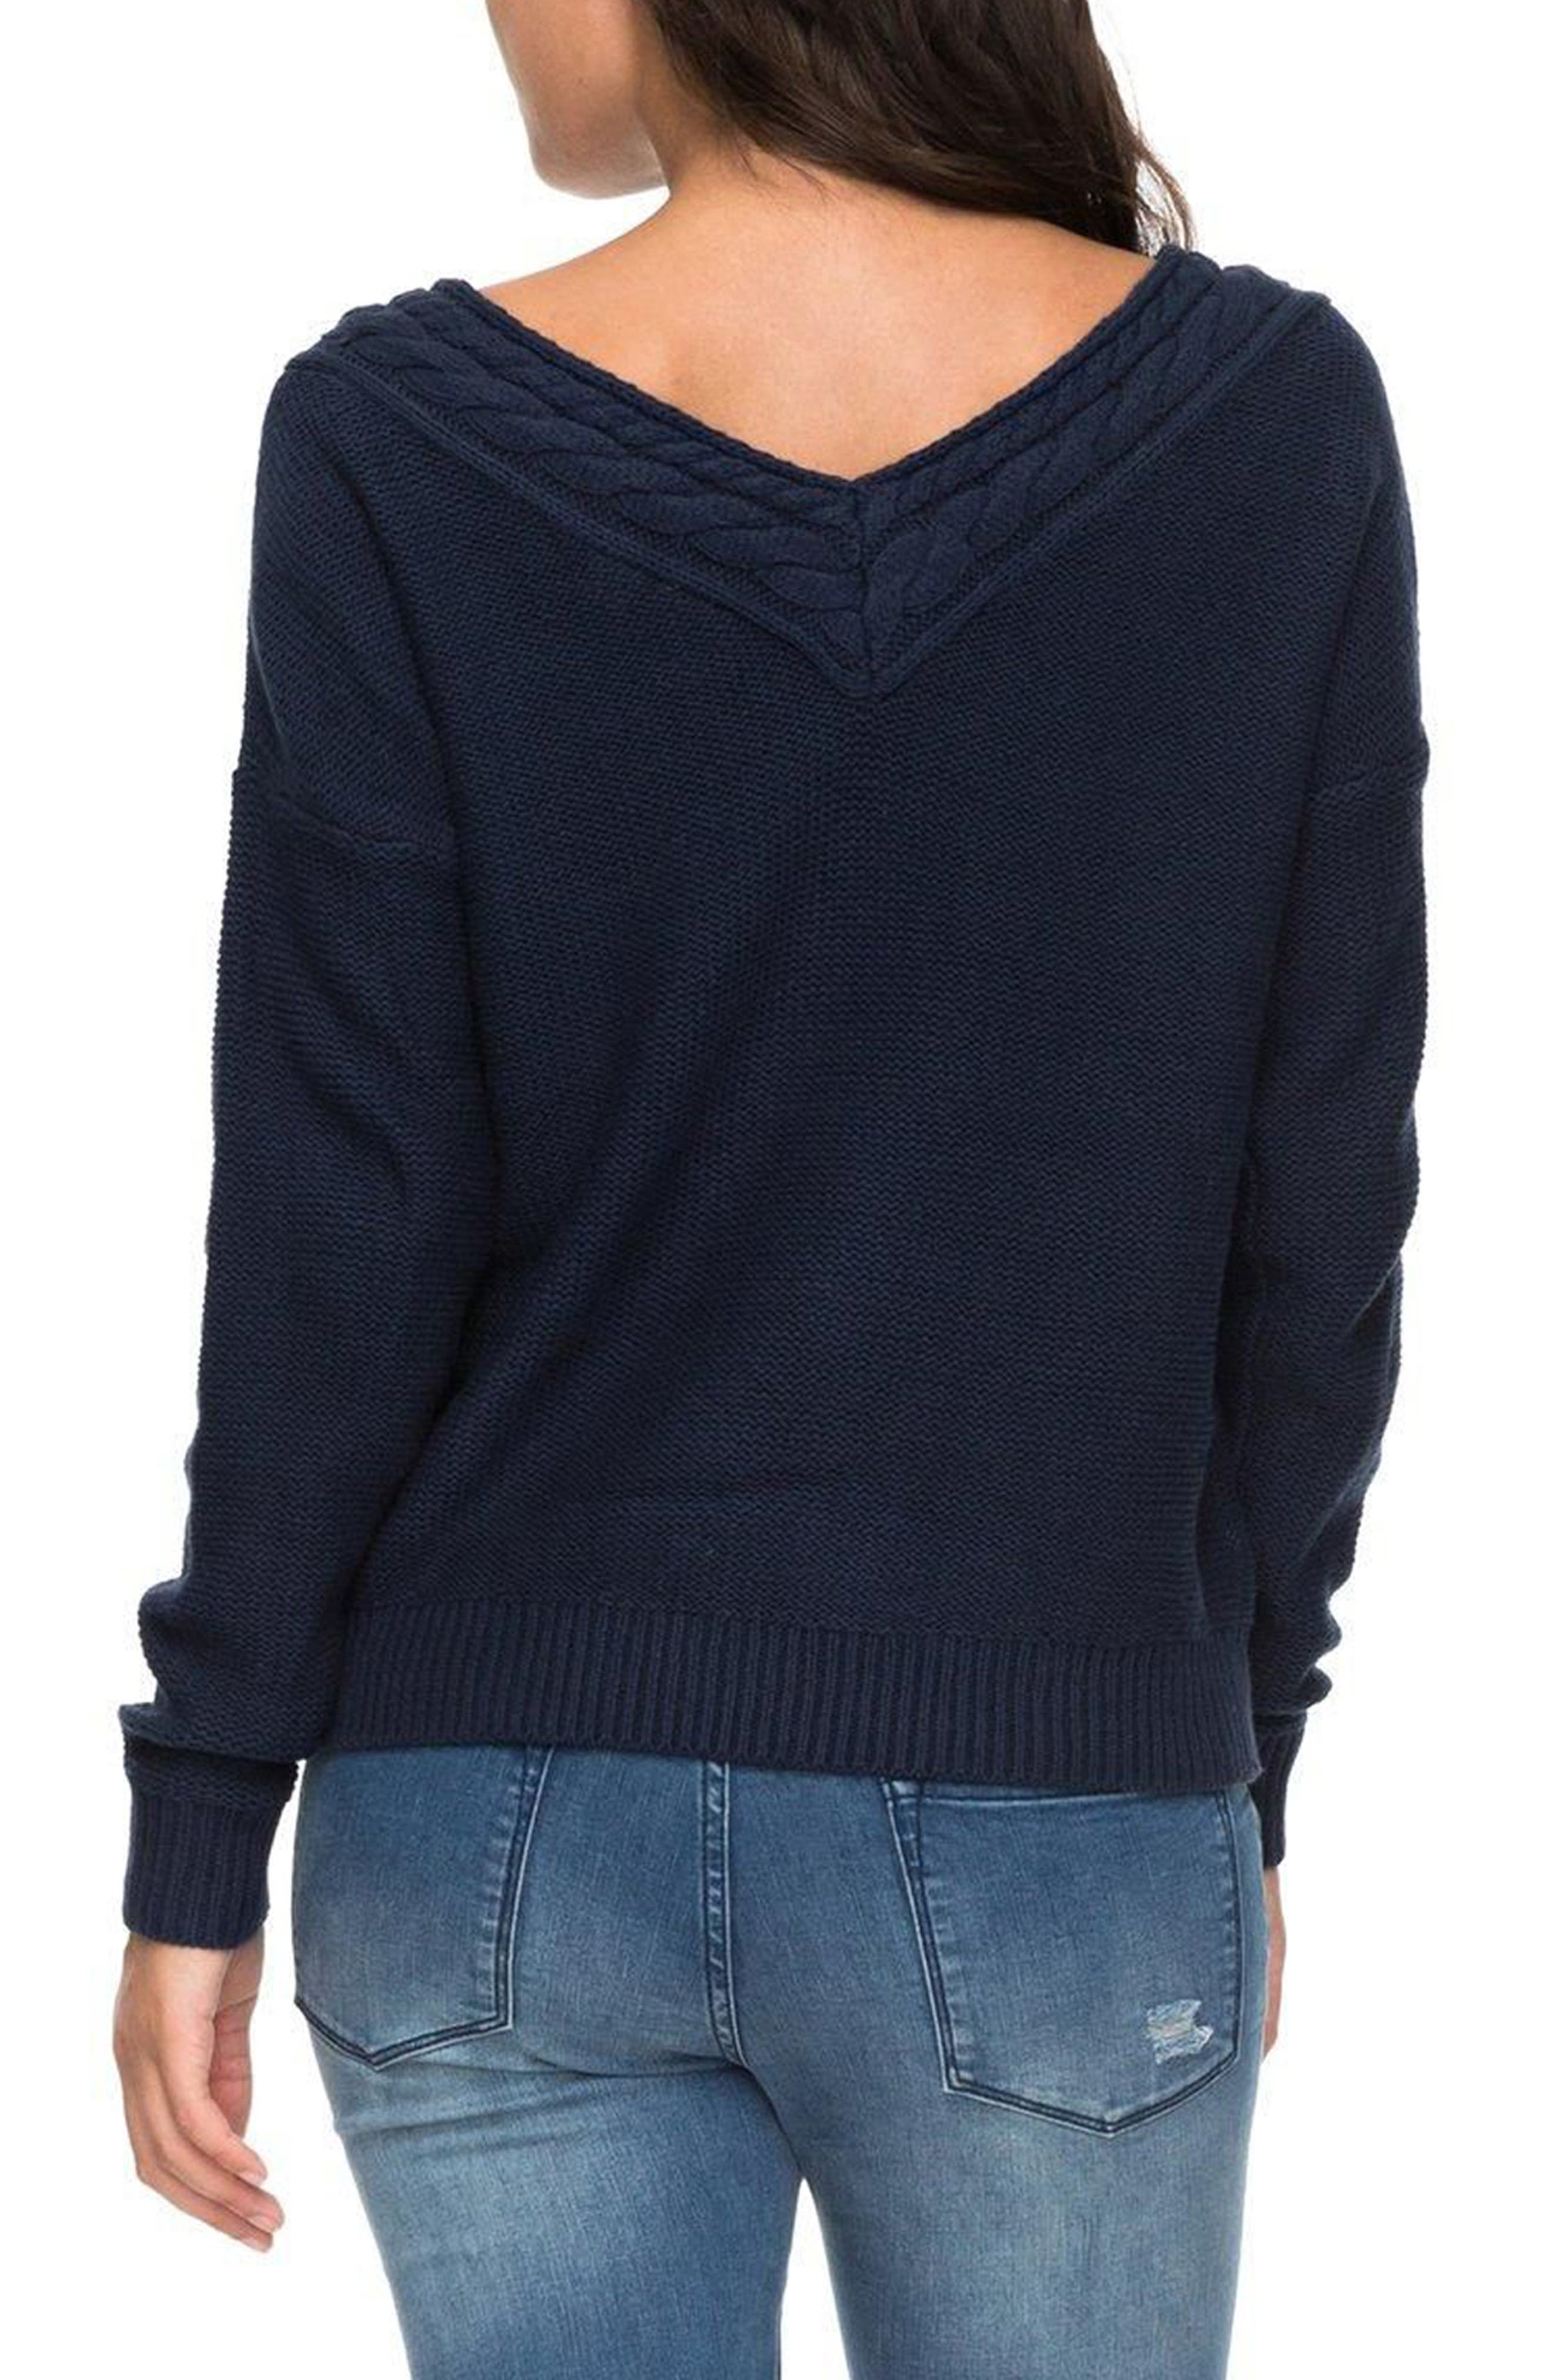 Choose to Shine Sweater,                             Alternate thumbnail 6, color,